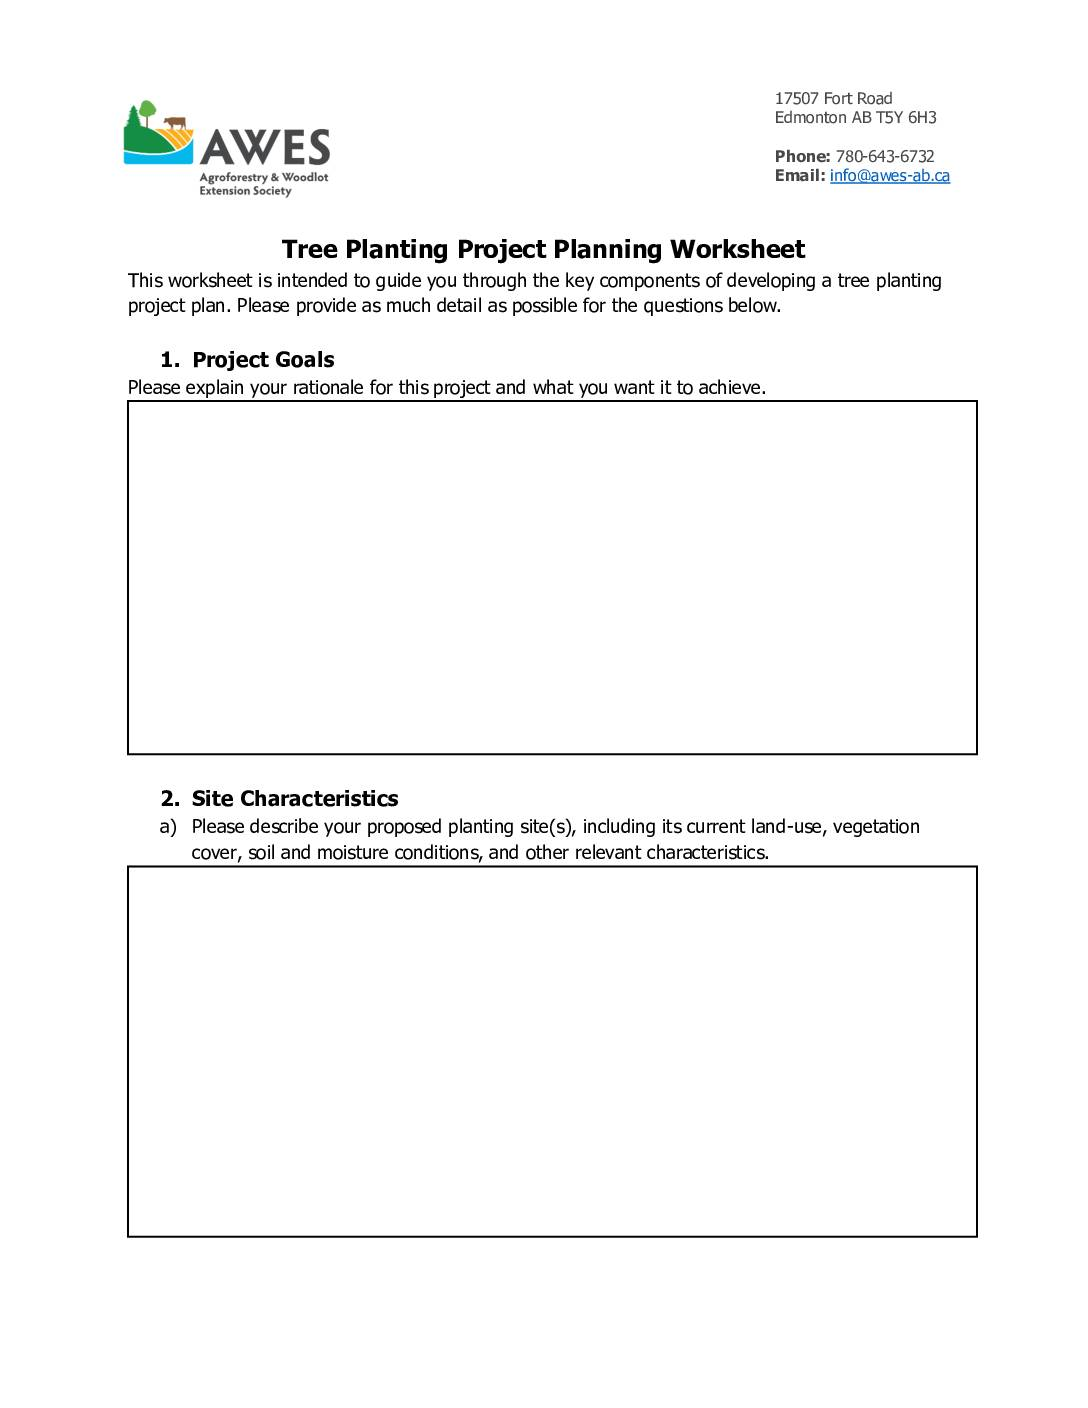 Awes Planting Project Planning Worksheet Awes